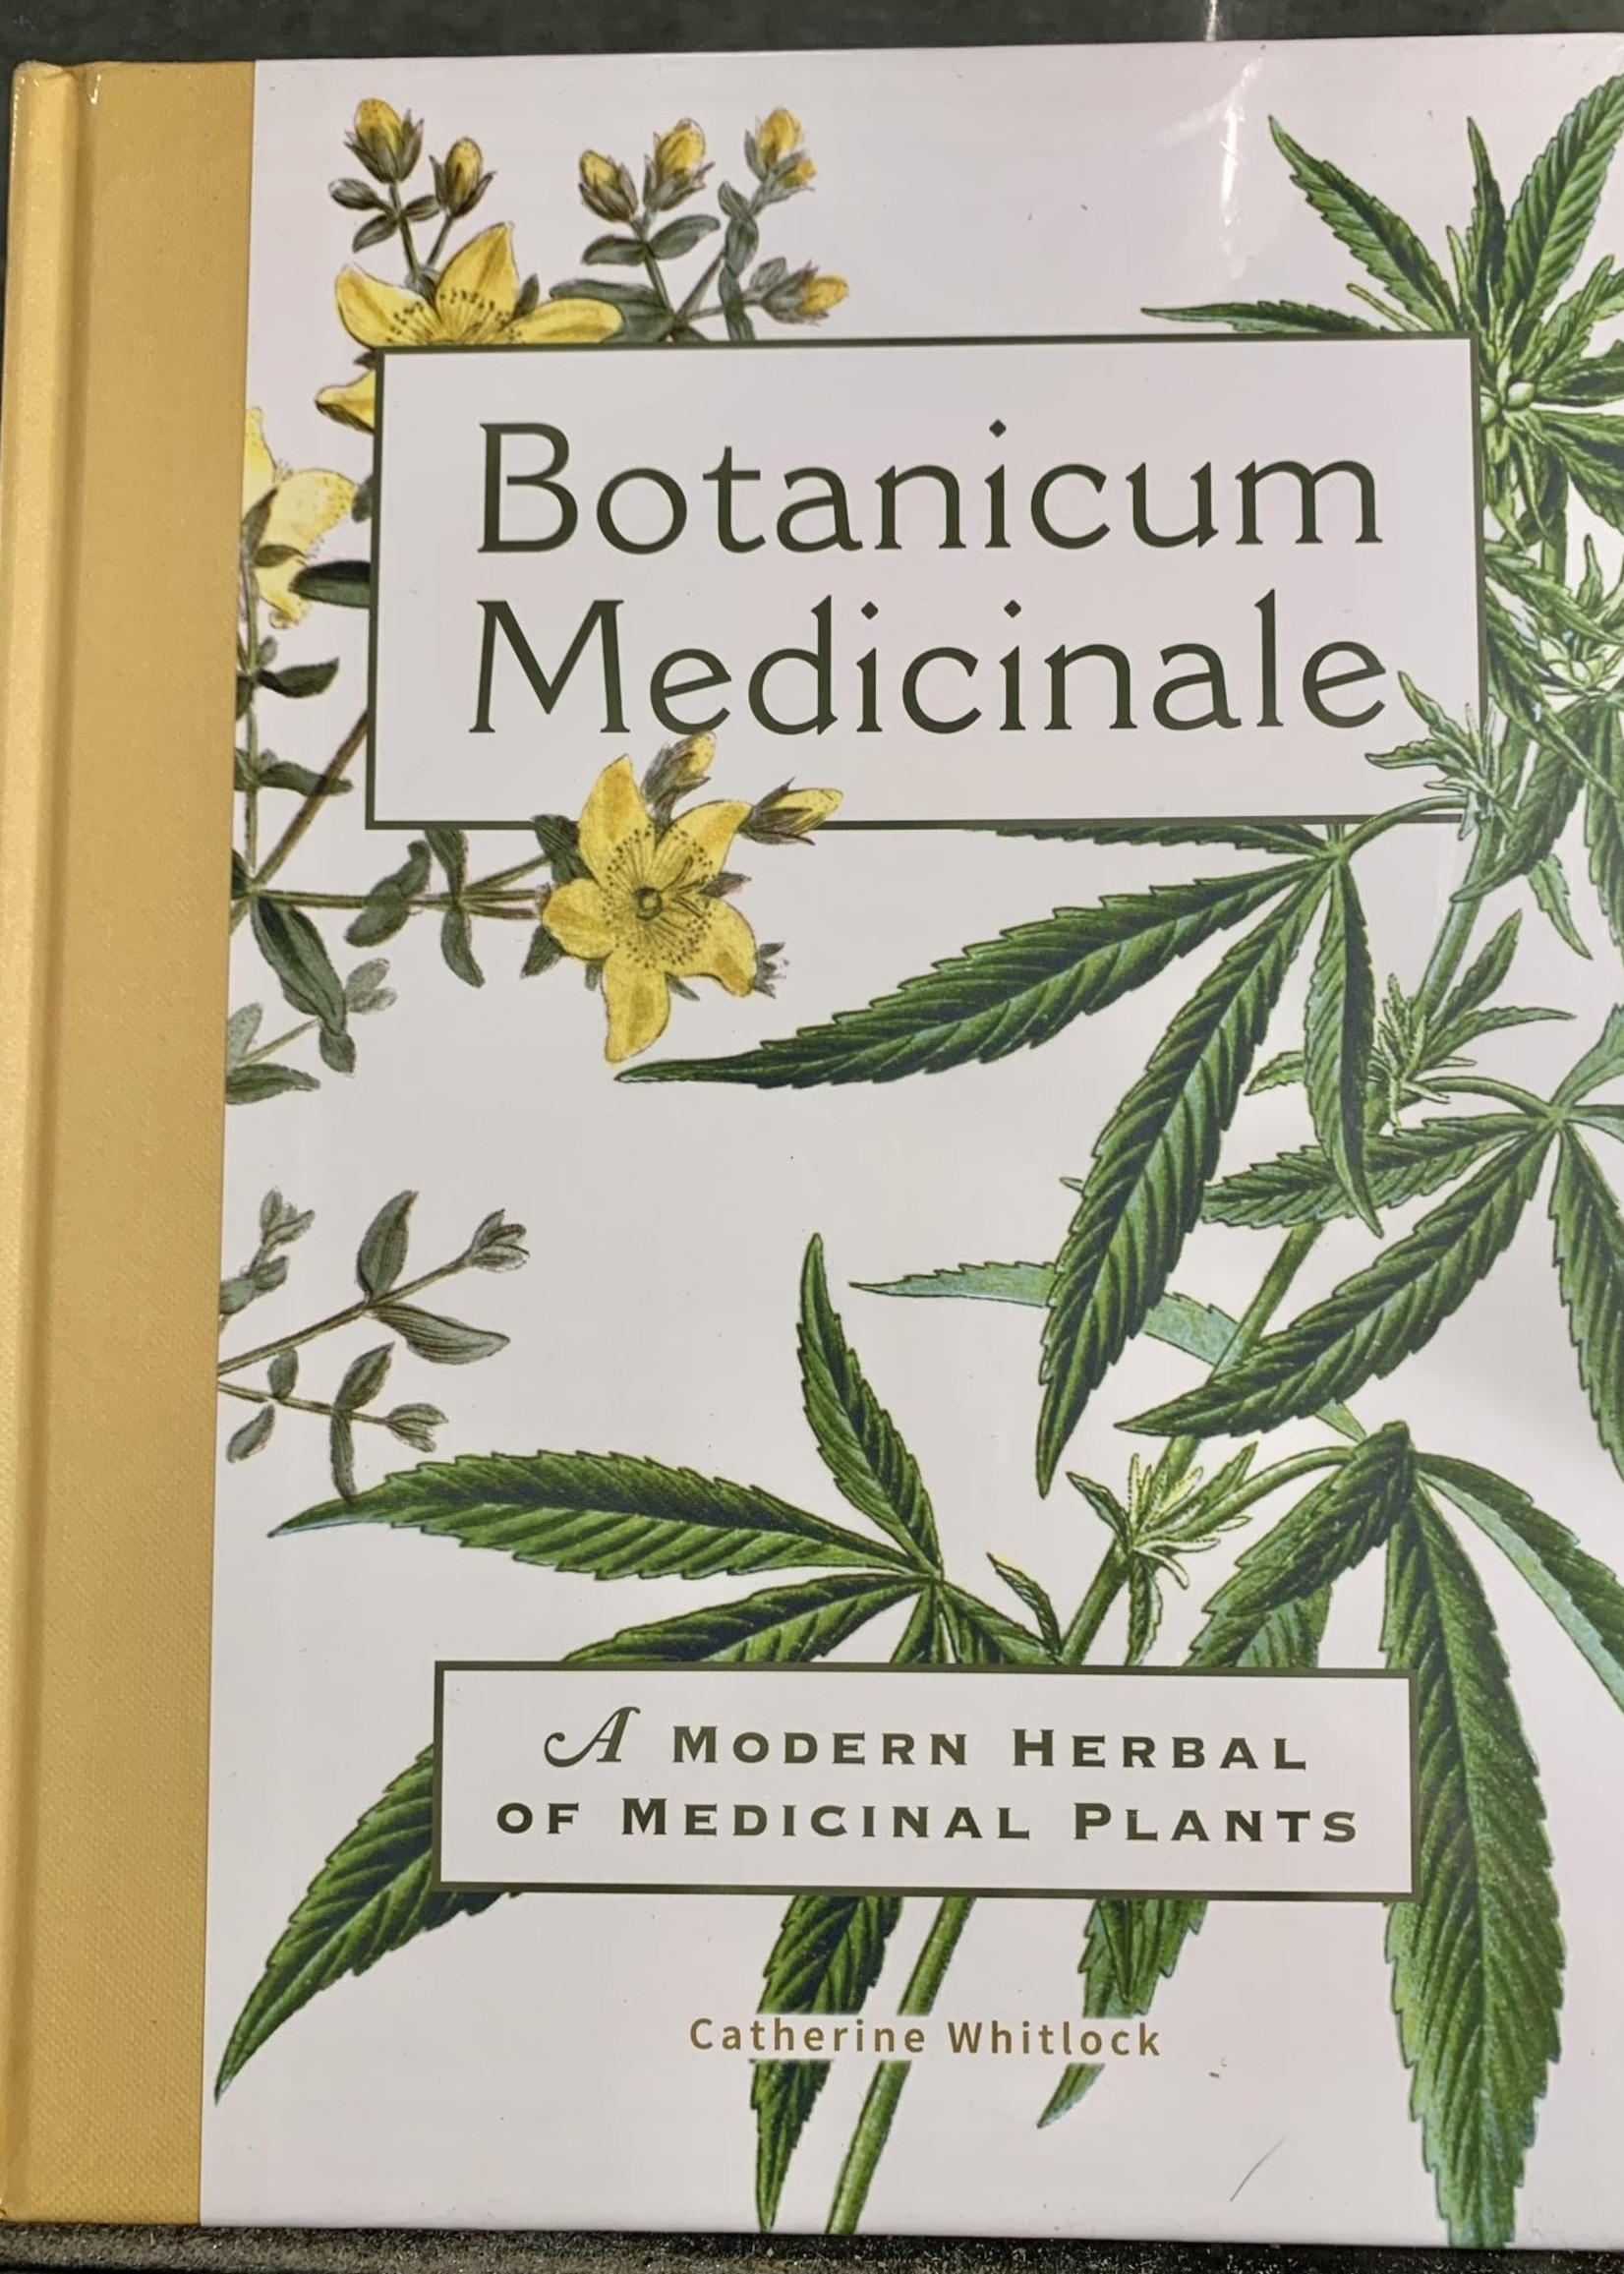 Botanicum Medicinale A MODERN HERBAL OF MEDICINAL PLANTS - By CATHERINE WHITLOCK